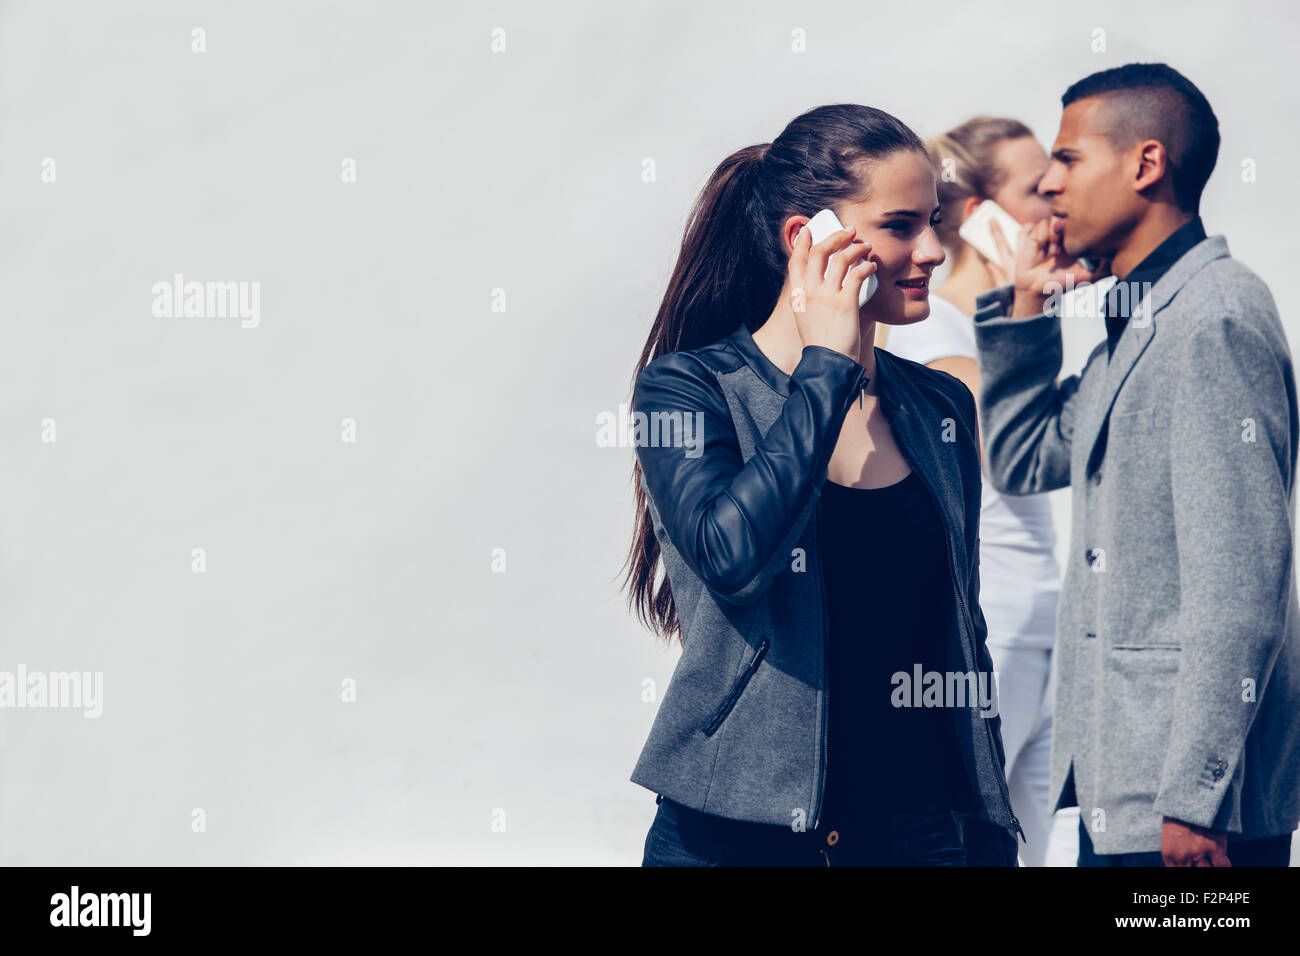 Young woman telephoning with smartphone in front of two other people - Stock Image